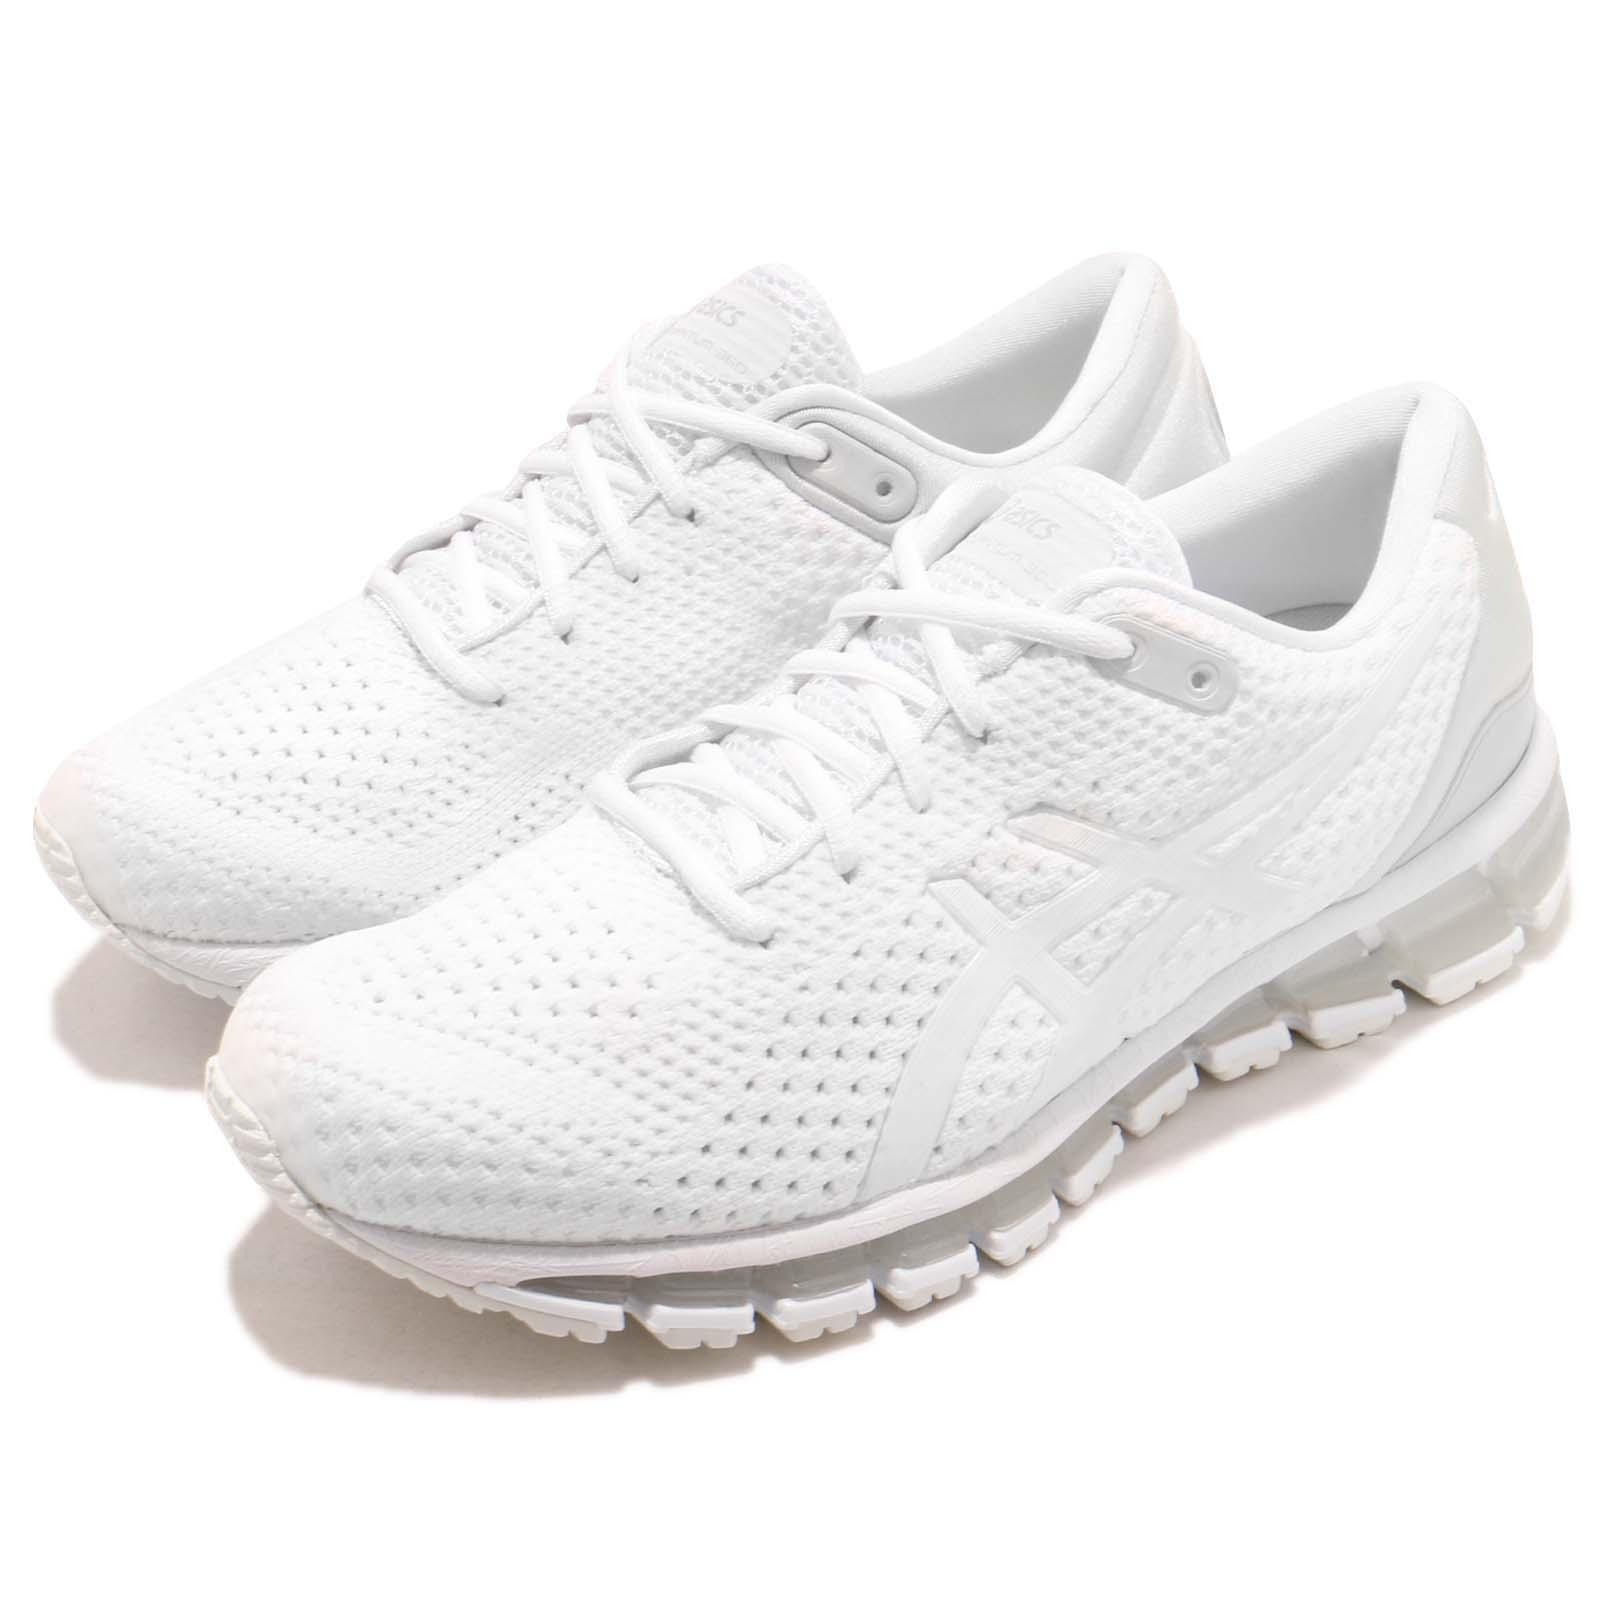 reputable site 34d0f d2f19 Details about Asics Gel-Quantum 360 Knit 2 White Women Running Training  Shoe Sneaker T890N-100